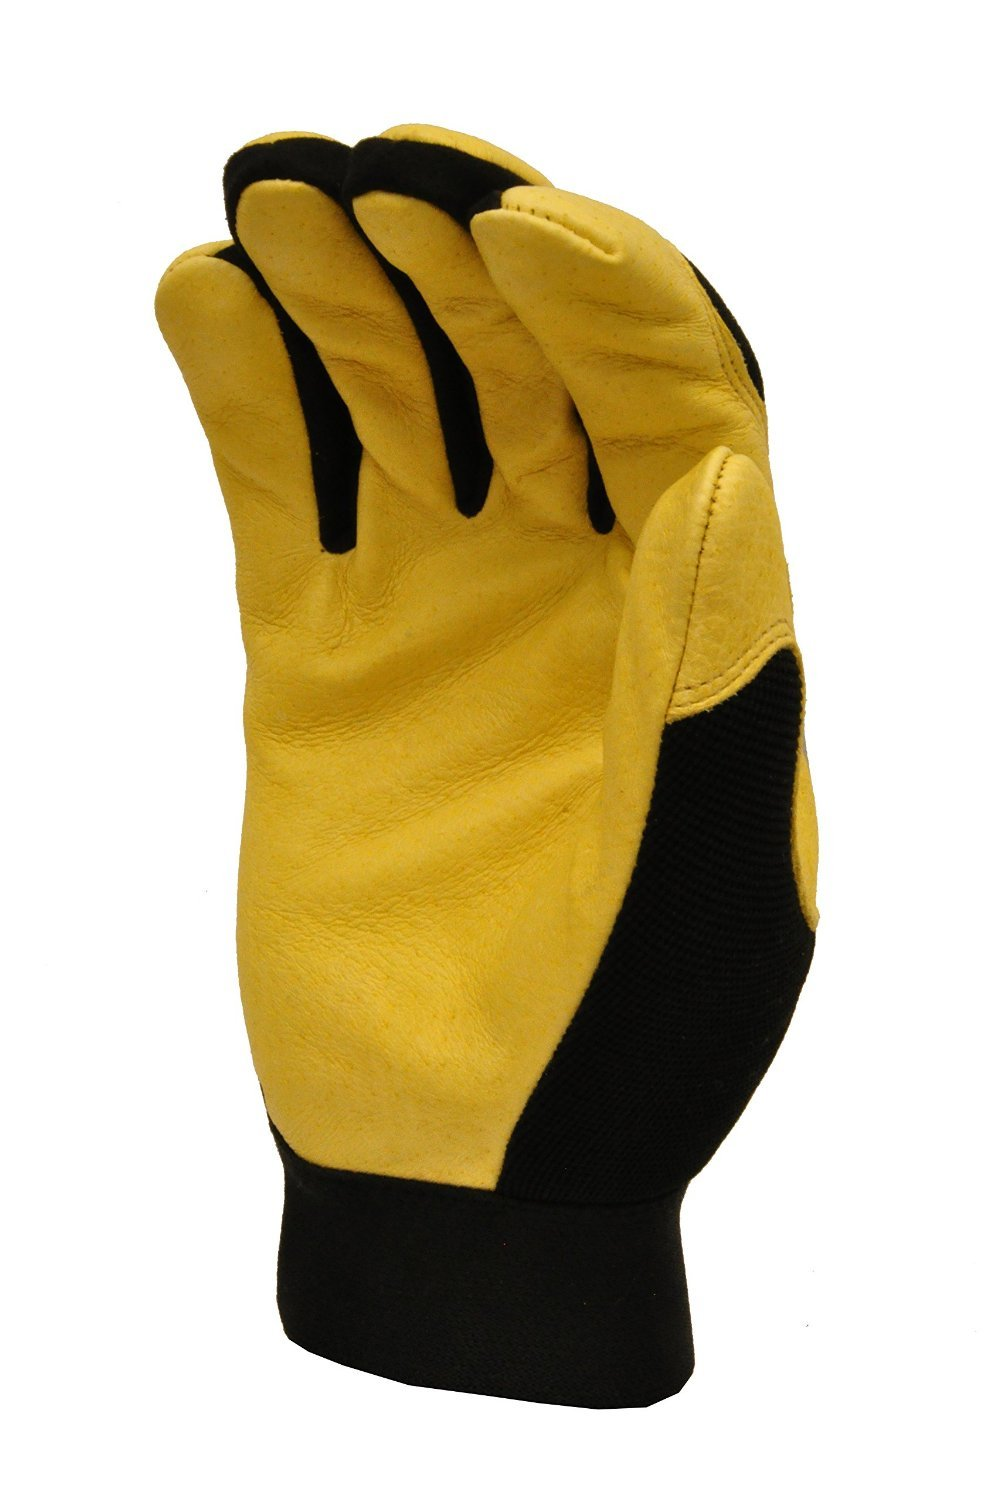 GF Gloves 1091XL-12 Dark Owl High Visibility Reflective Performance Gloves, X-Large, Yellow (Pack of 12)